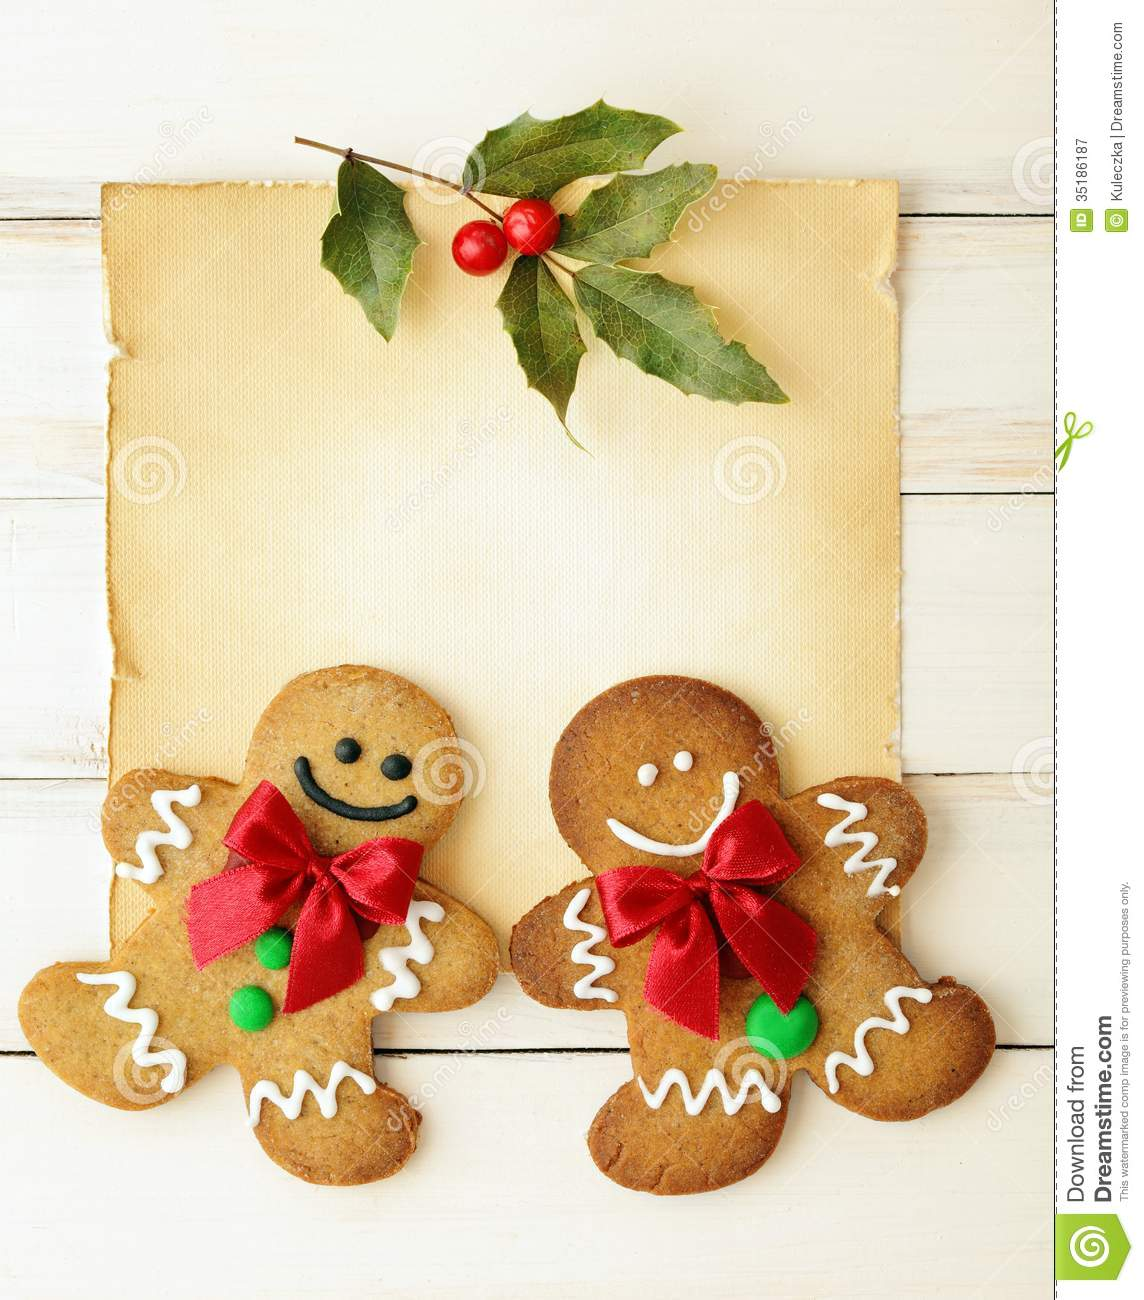 Christmas Cookies Stock Image. Image Of Cooking, Cookie